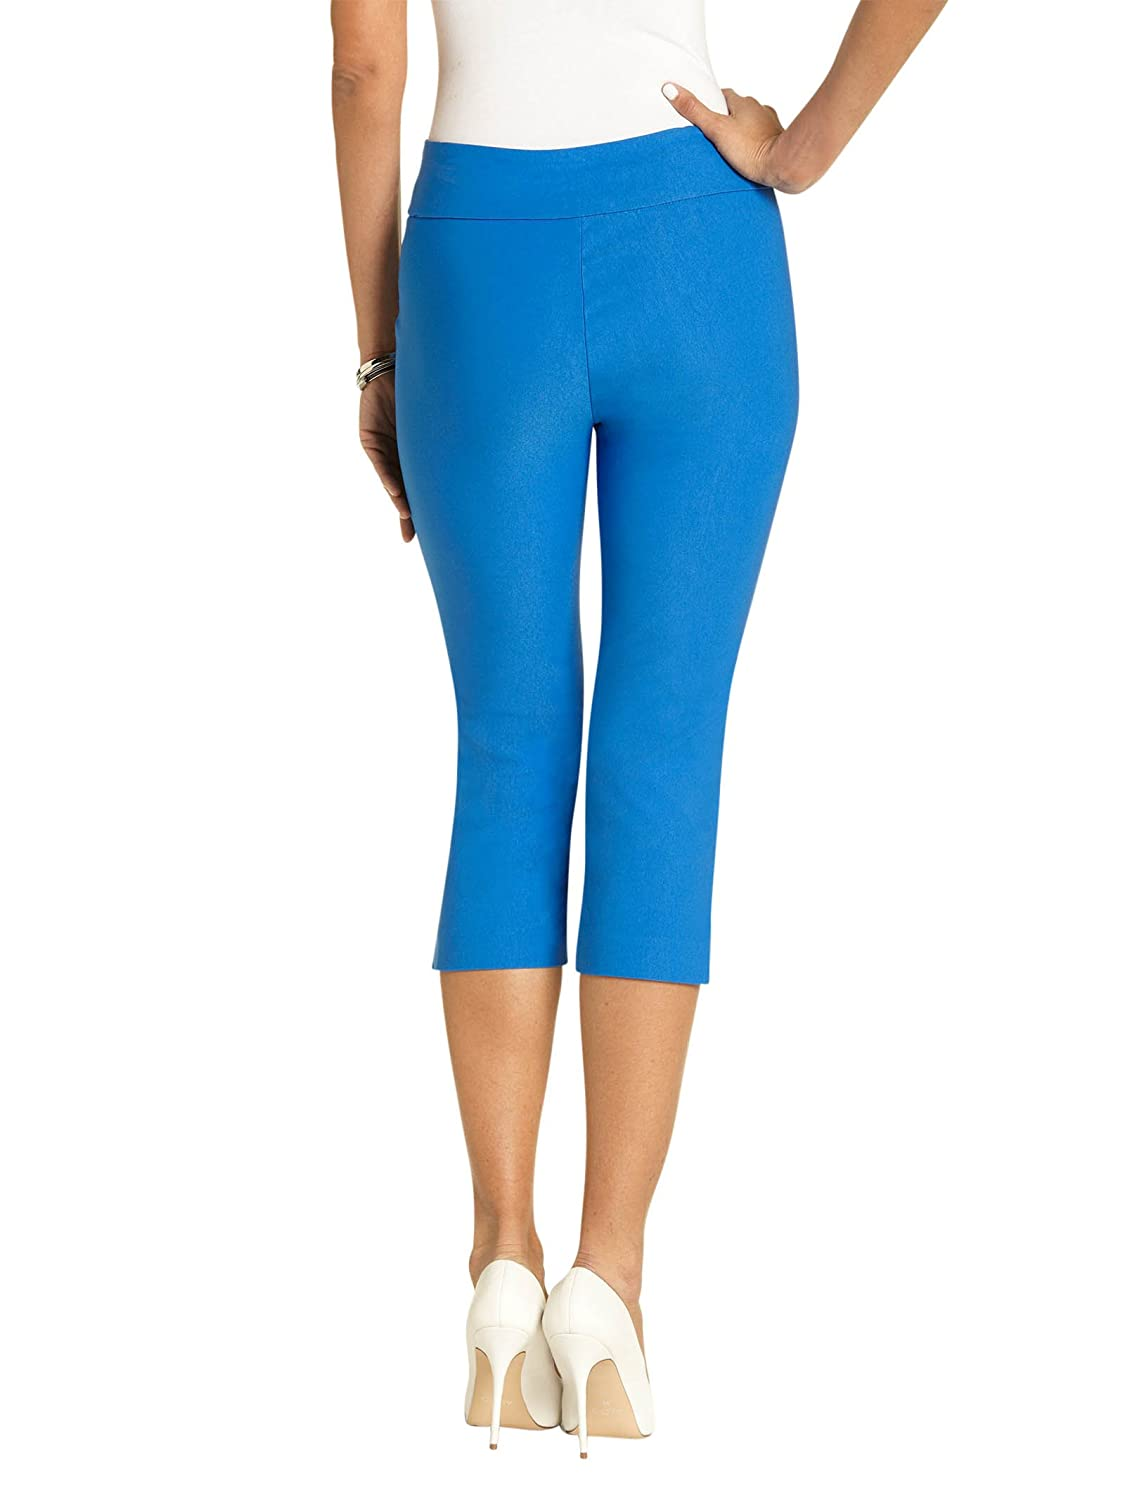 Style#6235 URREBEL UR REBEL UR Rebel Pants for Womens-Simon Chang Microtwill Capri